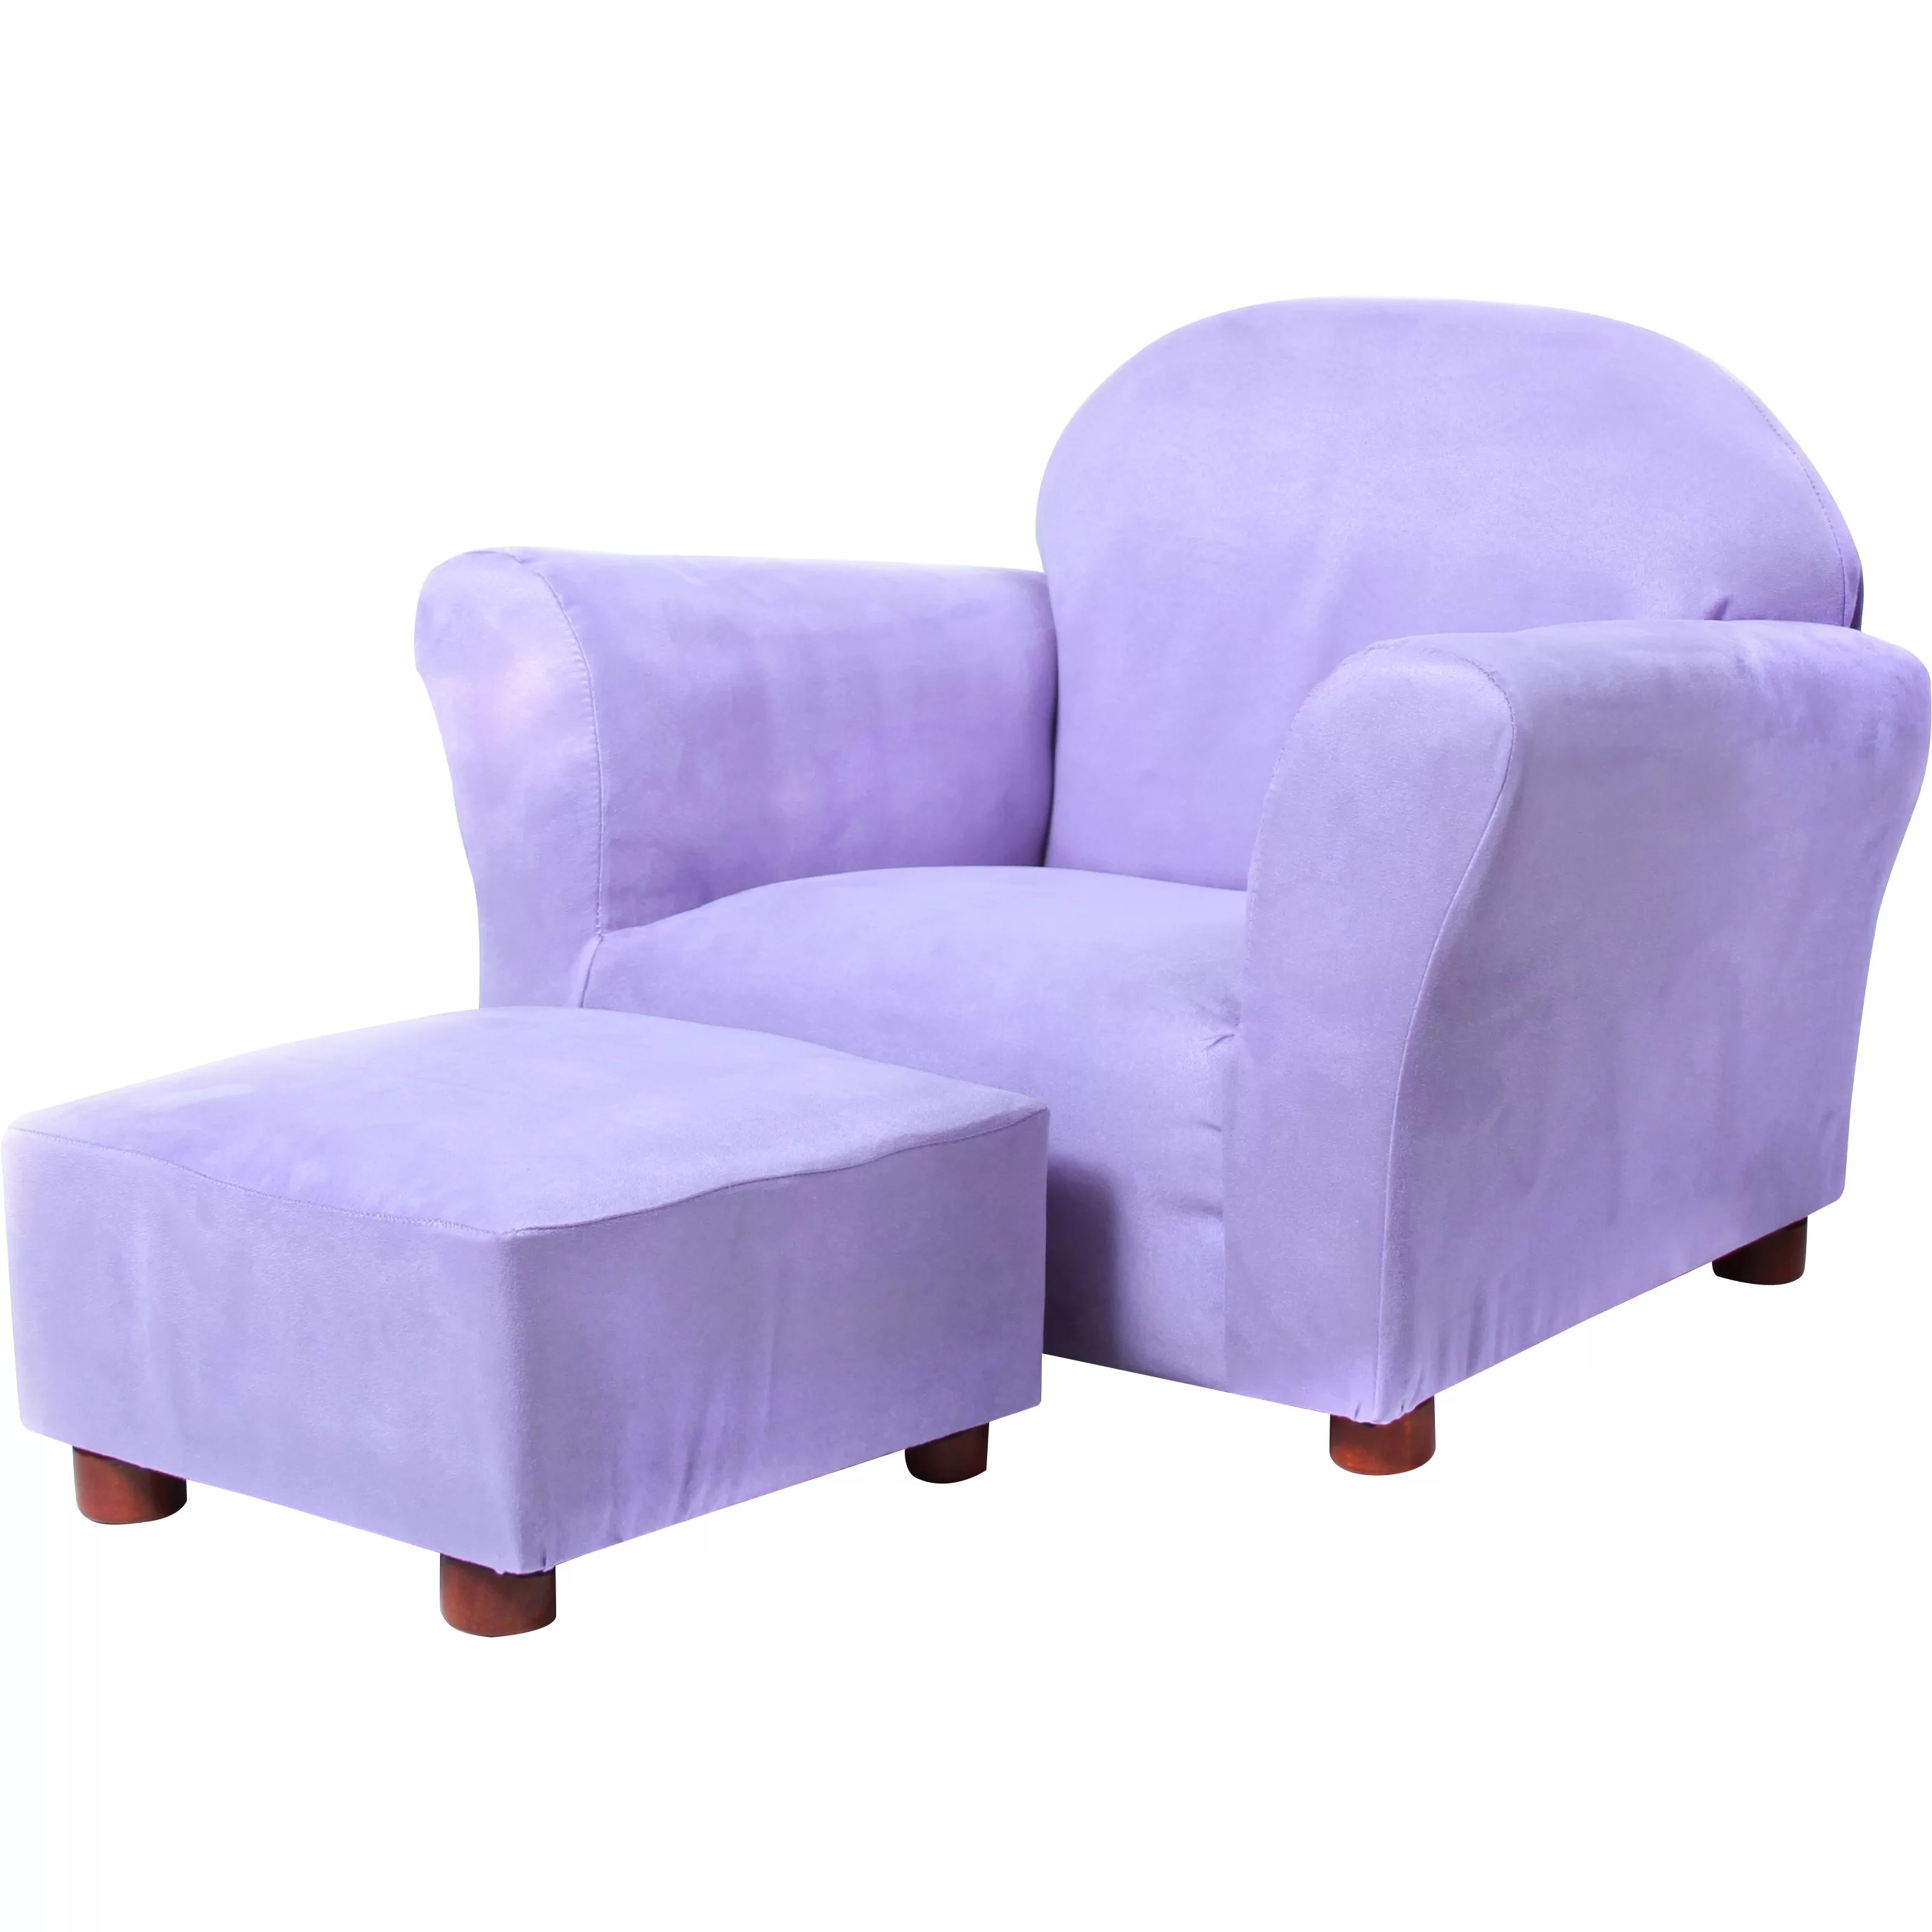 kids chair and ottoman personalized kid roundy club wayfair